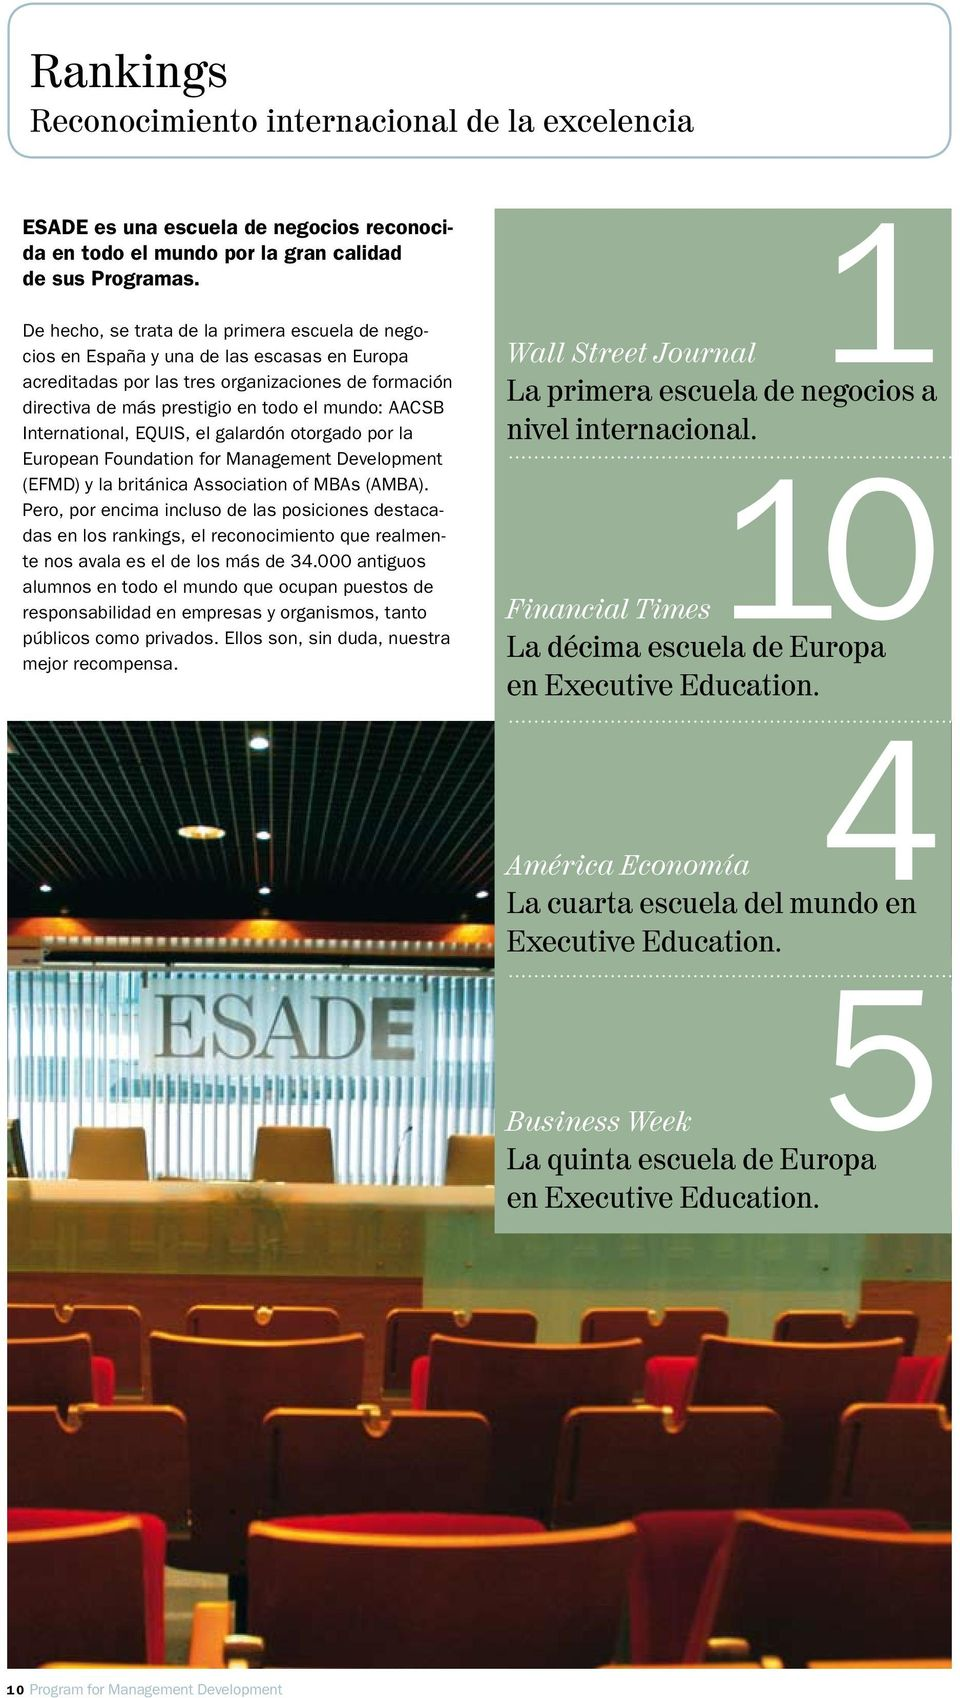 International, EQUIS, el galardón otorgado por la European Foundation for Management Development (EFMD) y la británica Association of MBAs (AMBA).